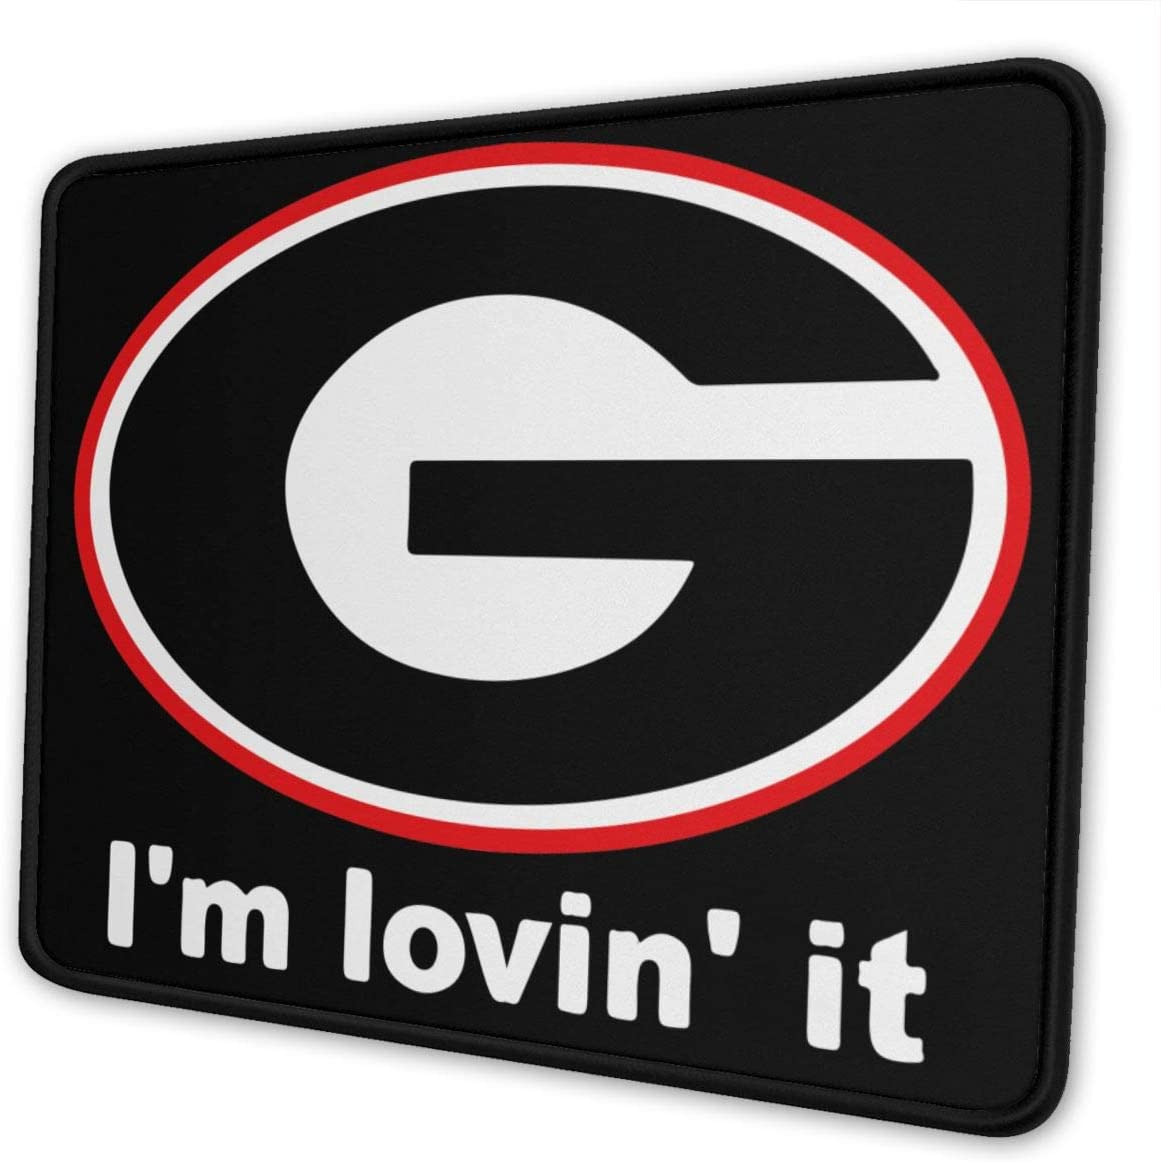 Georgia Bulldog Mouse Pad 10x12Inch with Stitched Edge Washable Mouse Pad for Office//Home for Computers Laptop